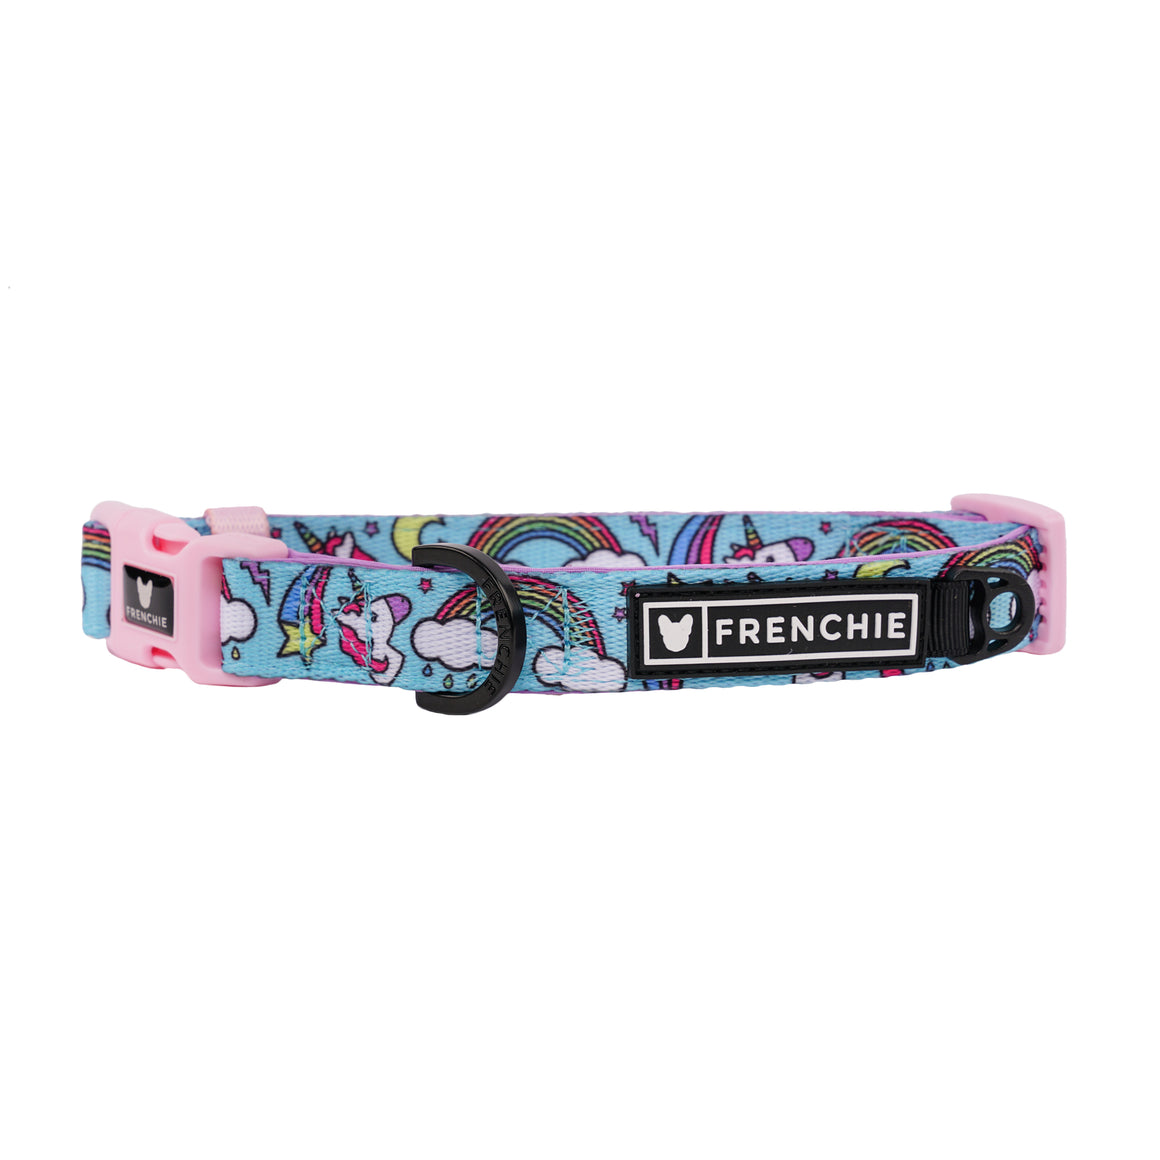 Frenchie Comfort Collar - Blue Magical Unicorn